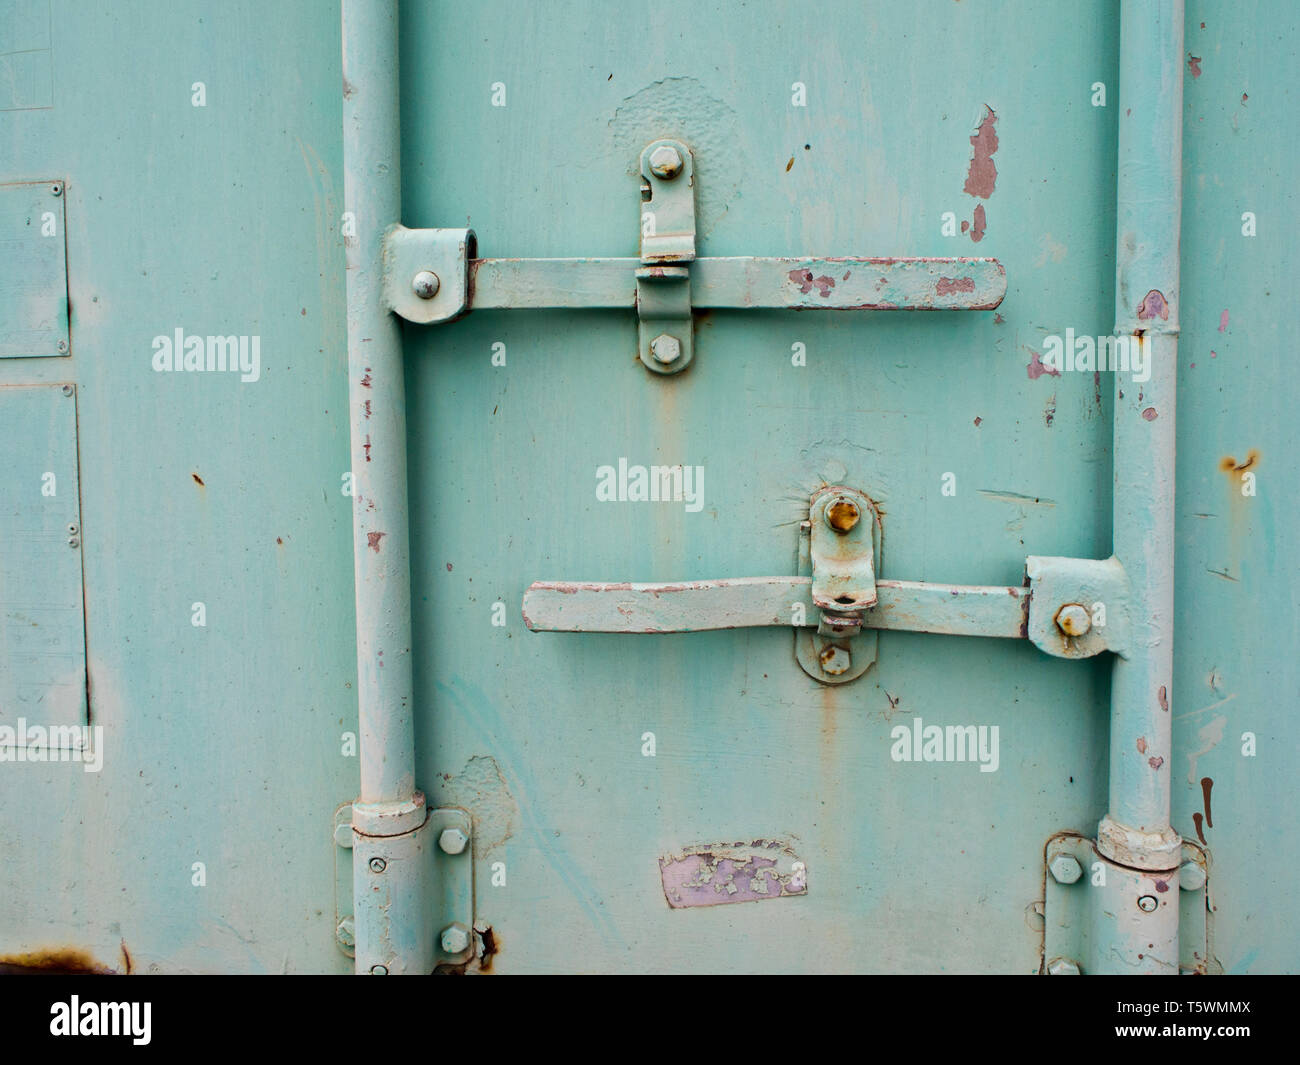 Close up to Containner door and dowel lock - Stock Image